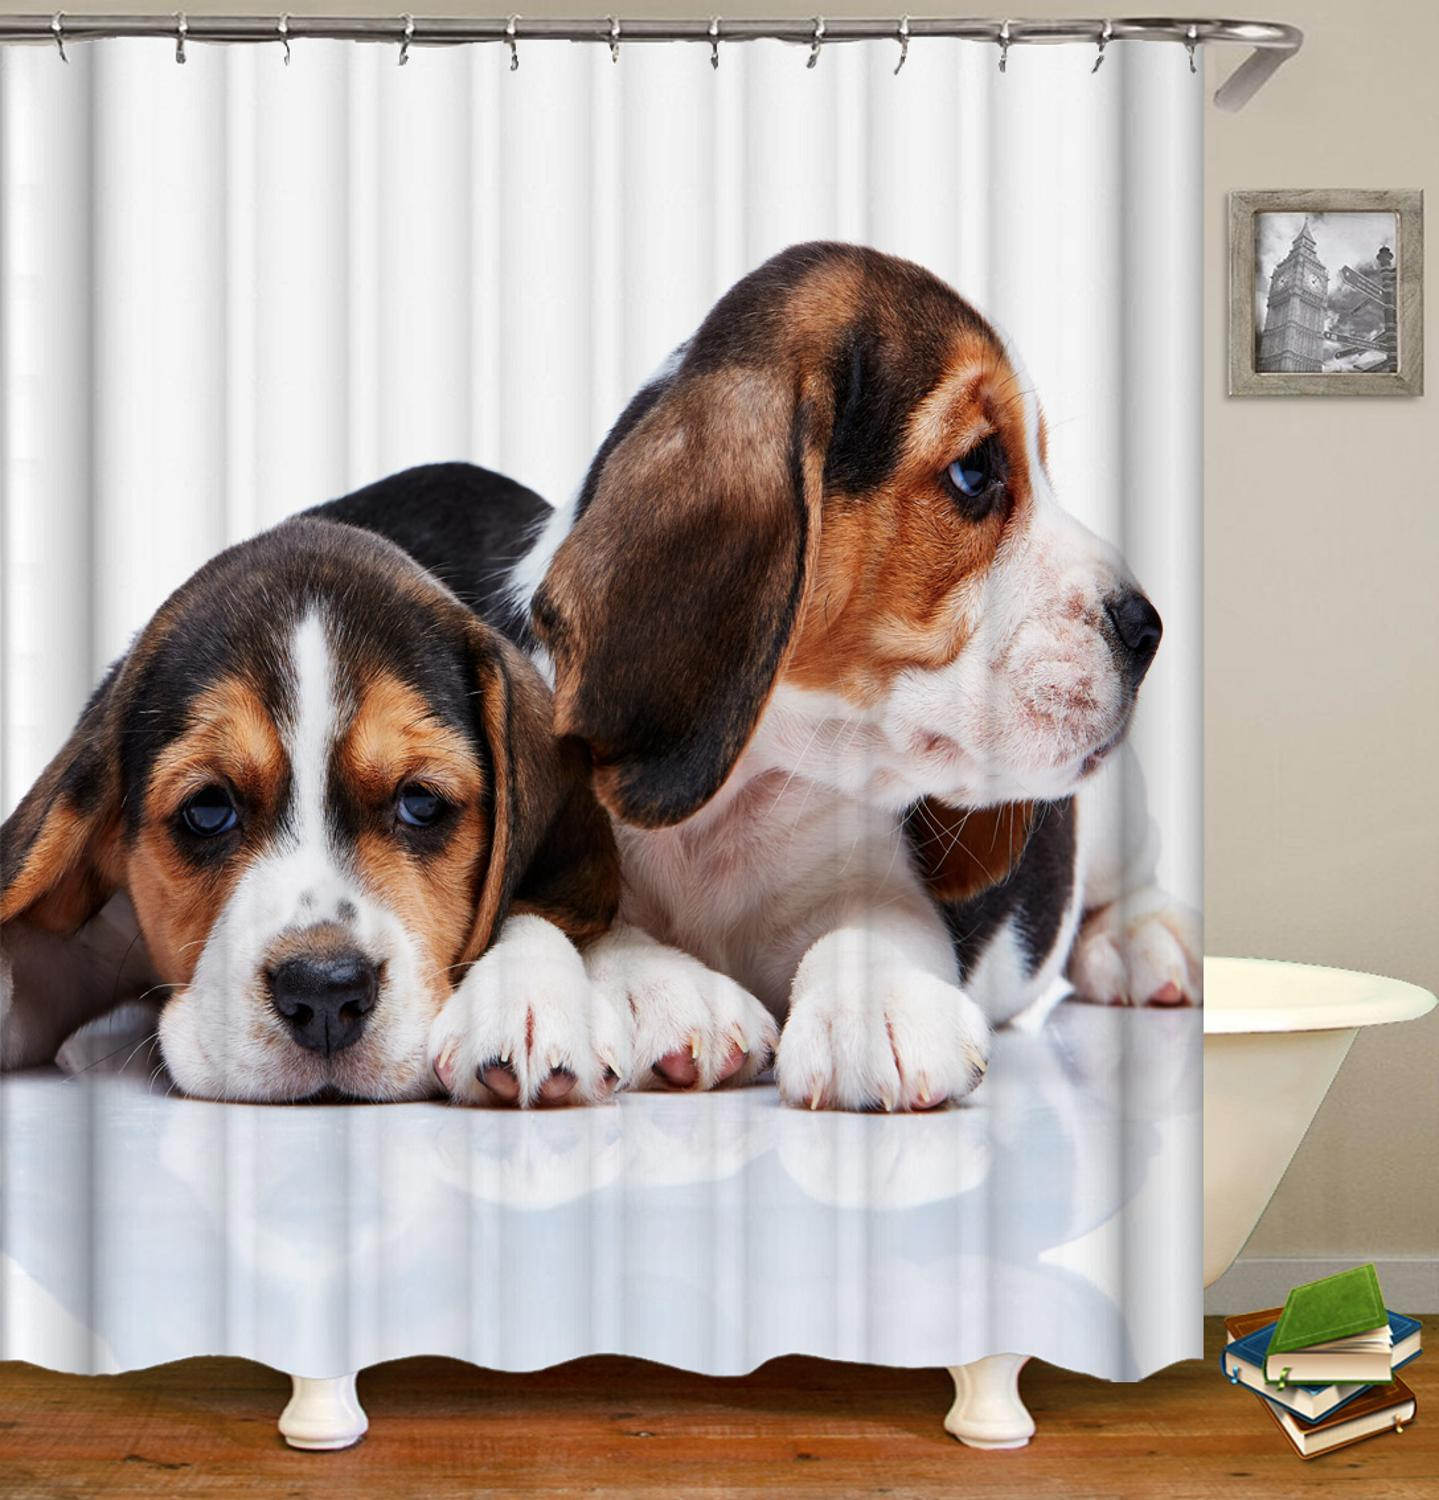 New Pet Dog Design Shower Curtains Animal modeling Bathroom Products Waterproof polyester shower curtain